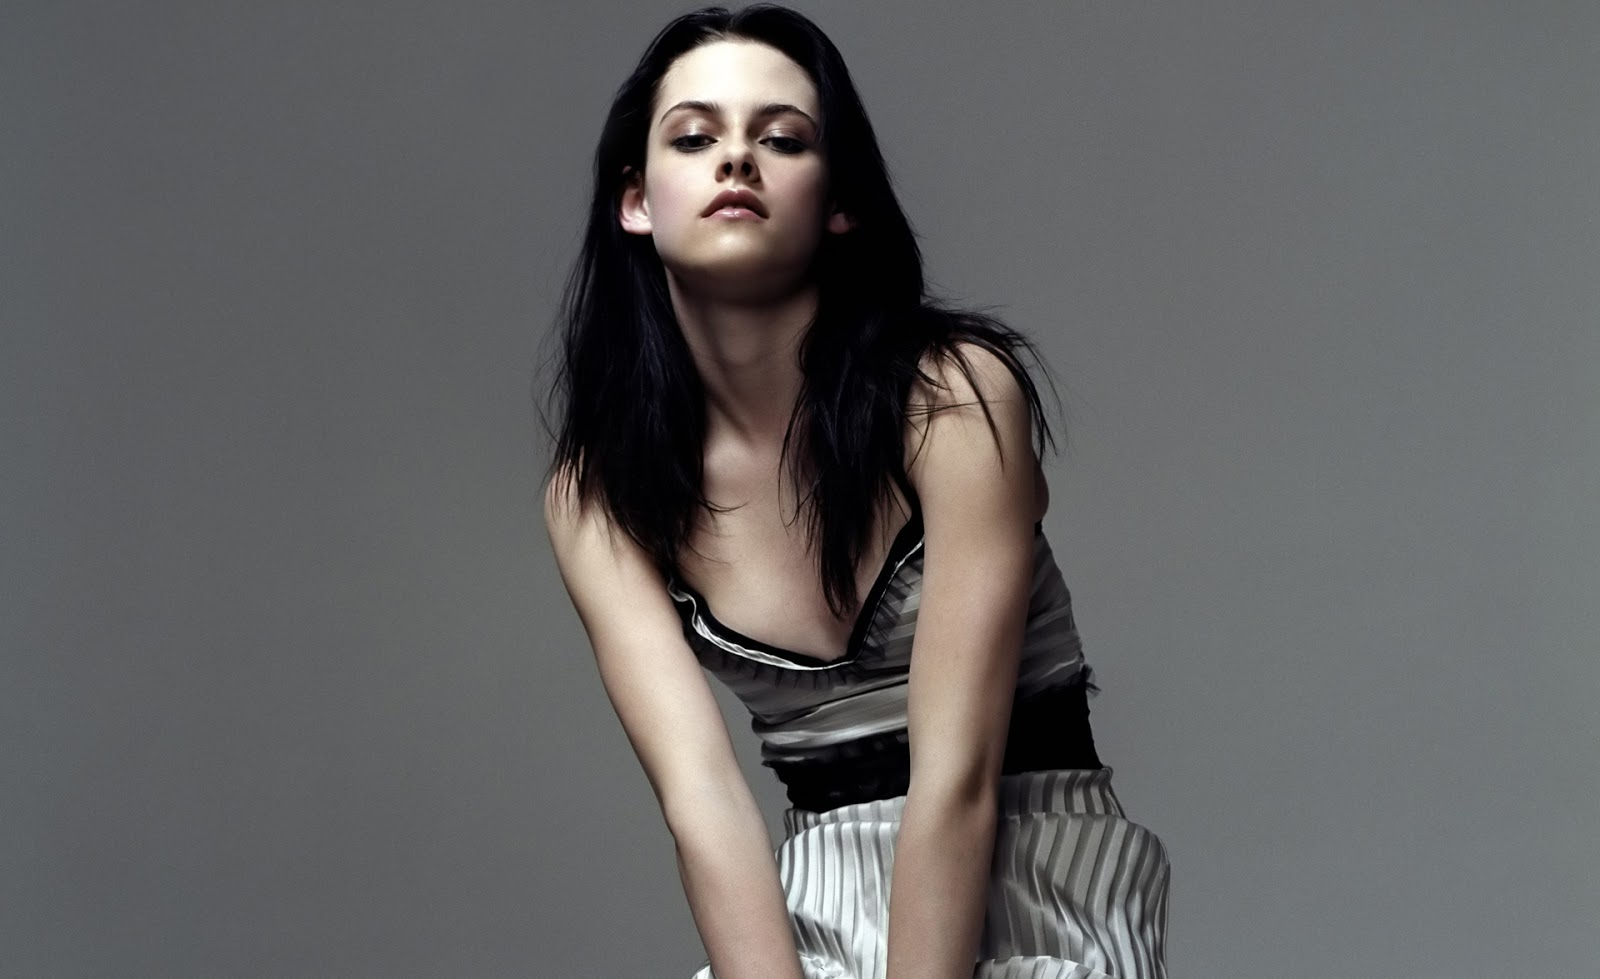 Download this Kristen Stewart Height Weight Body Measurements picture